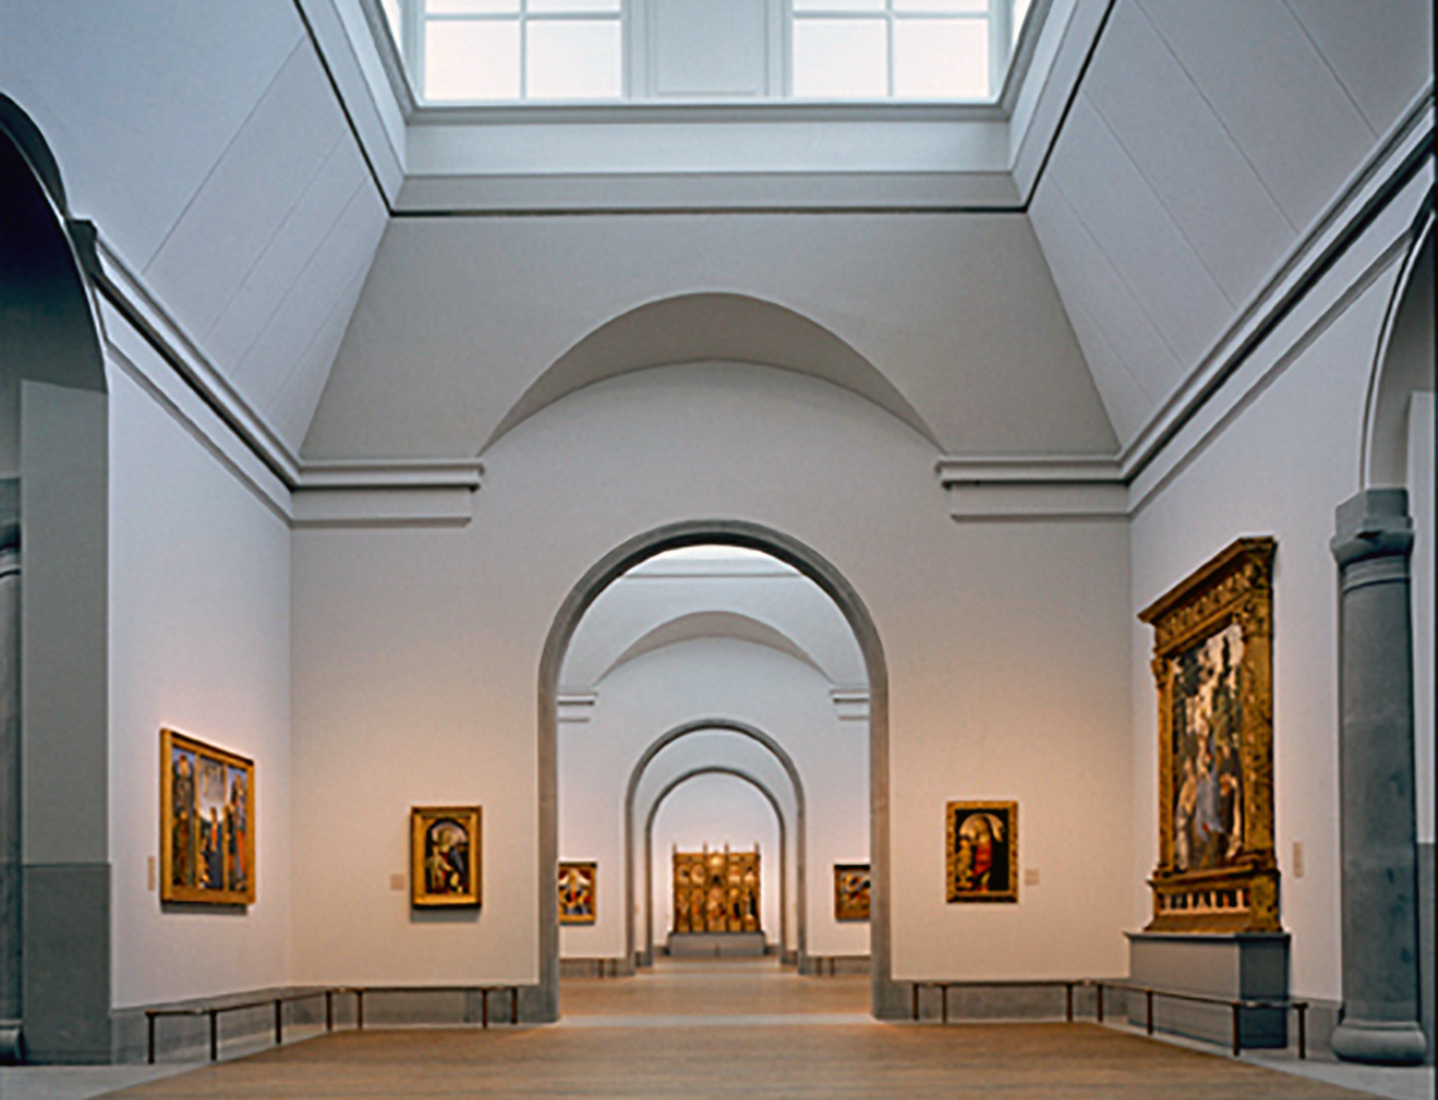 Sainsbury Wing, National Gallery (interior)